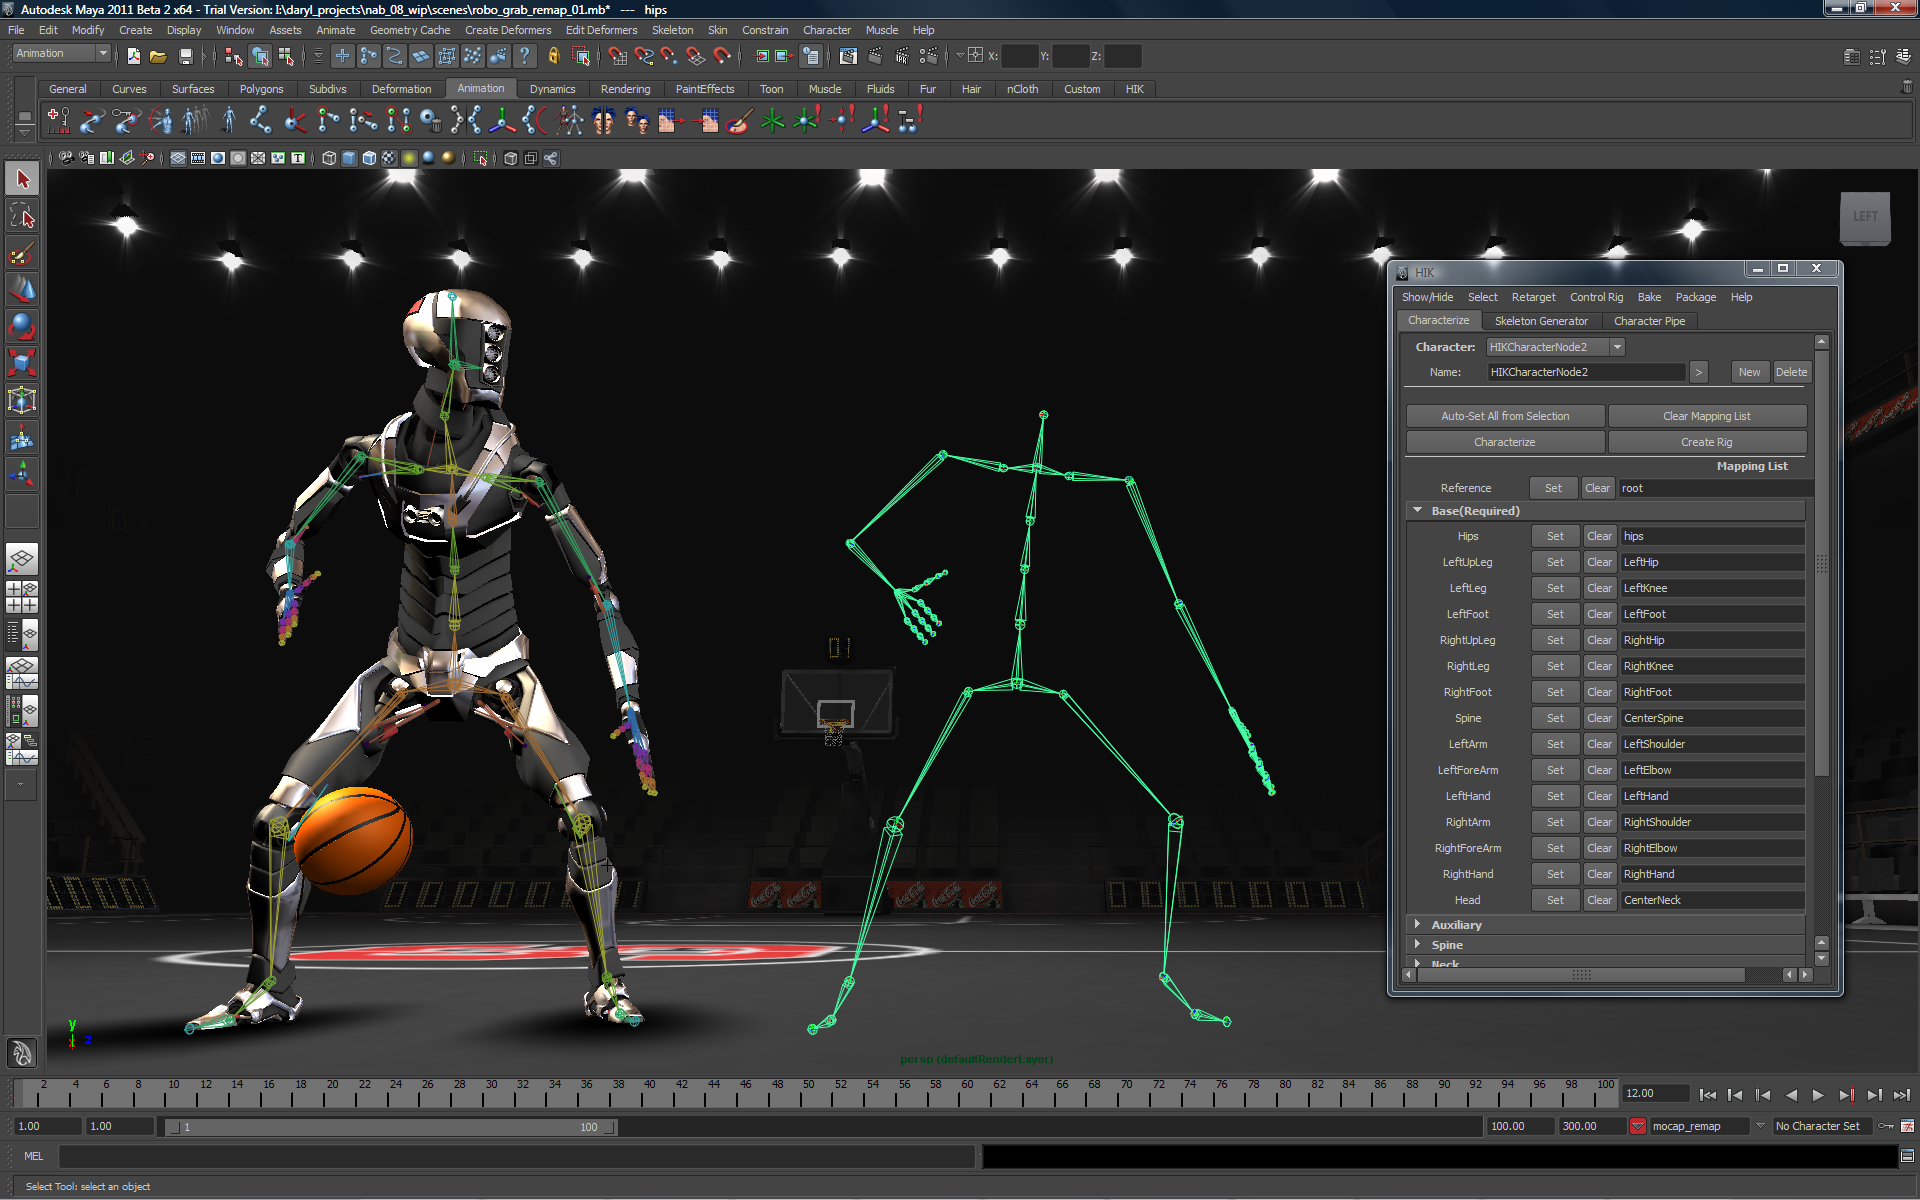 Autodesk gives away 25m in free 3d modeling software to 3d application